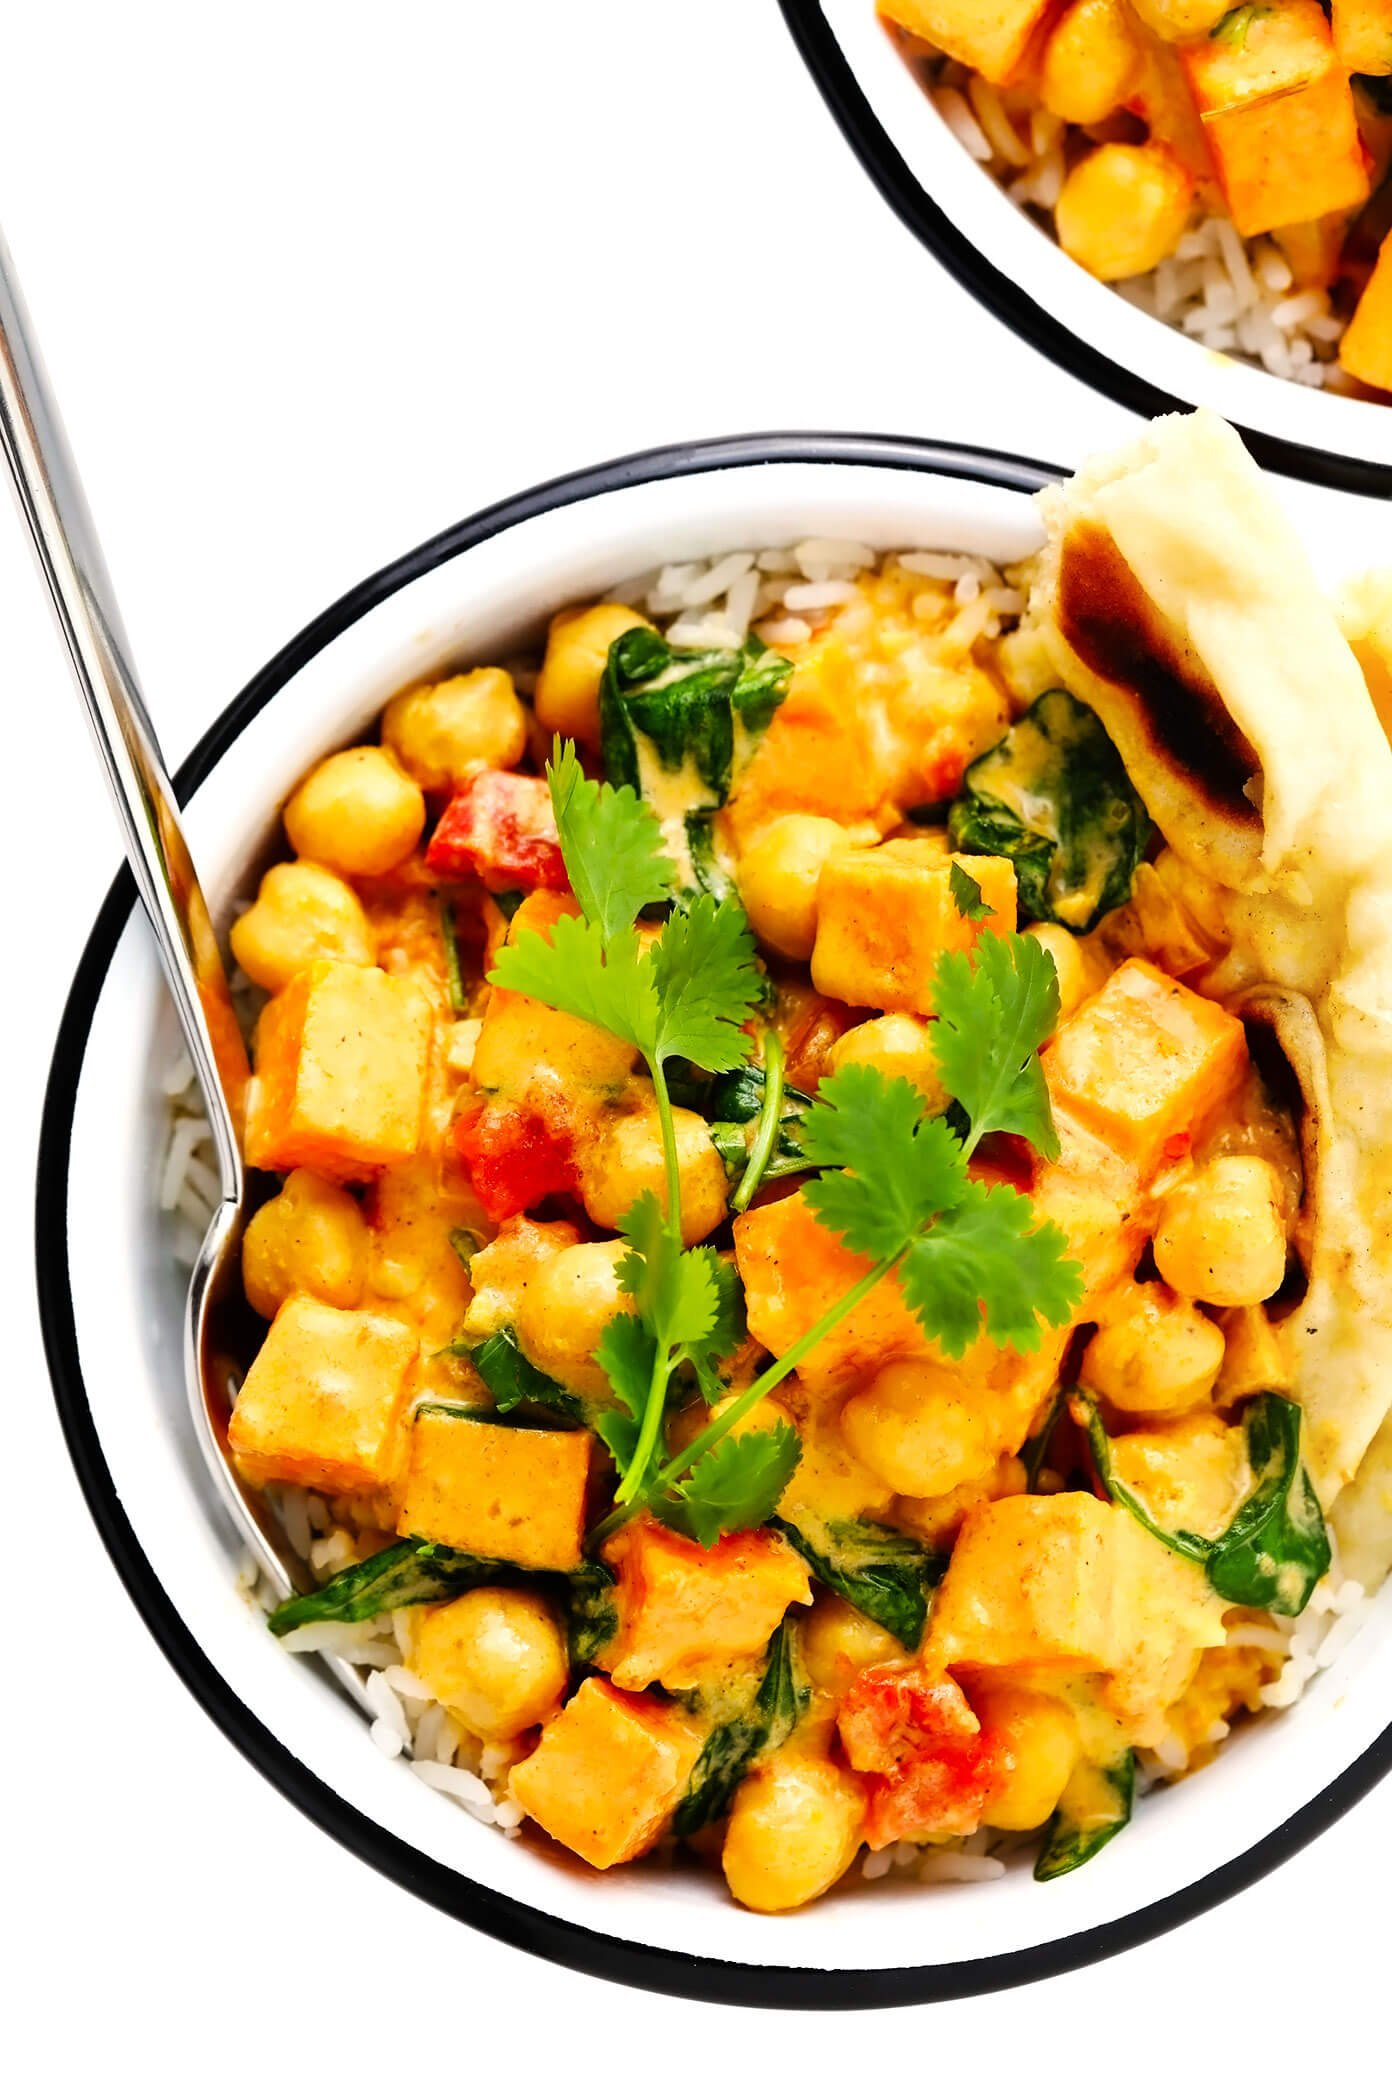 Sweet Potato Chickpea Coconut Curry in Bowl with Naan Bread and Rice